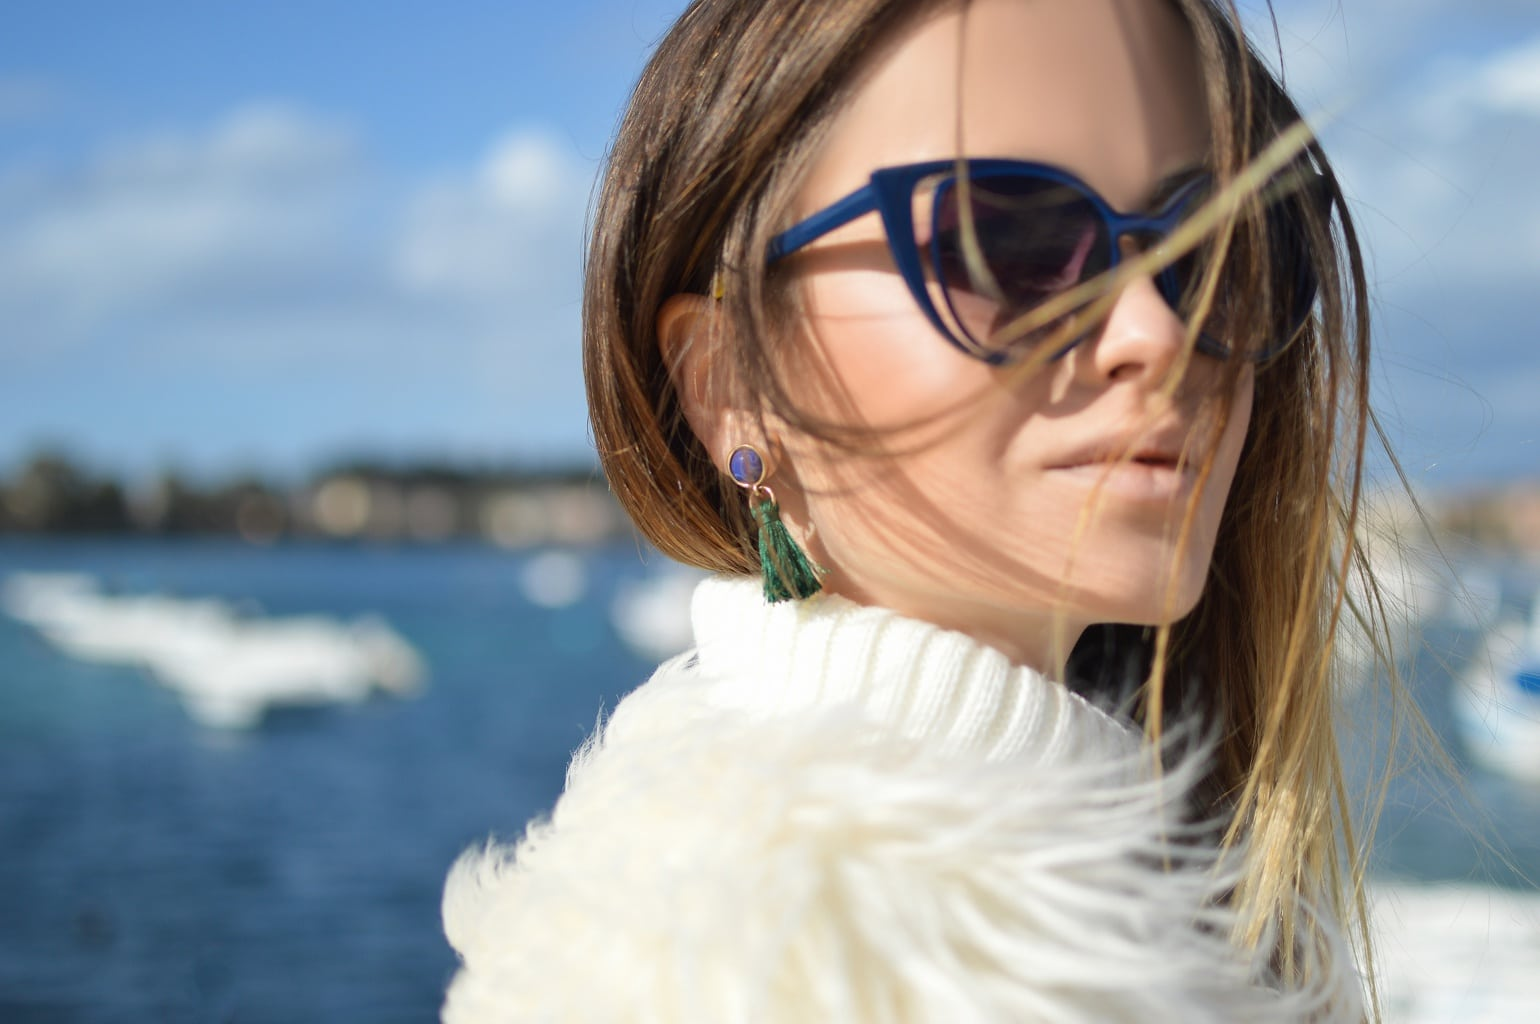 Single woman standing in front of the ocean, wearing sunglasses and a fur jacket